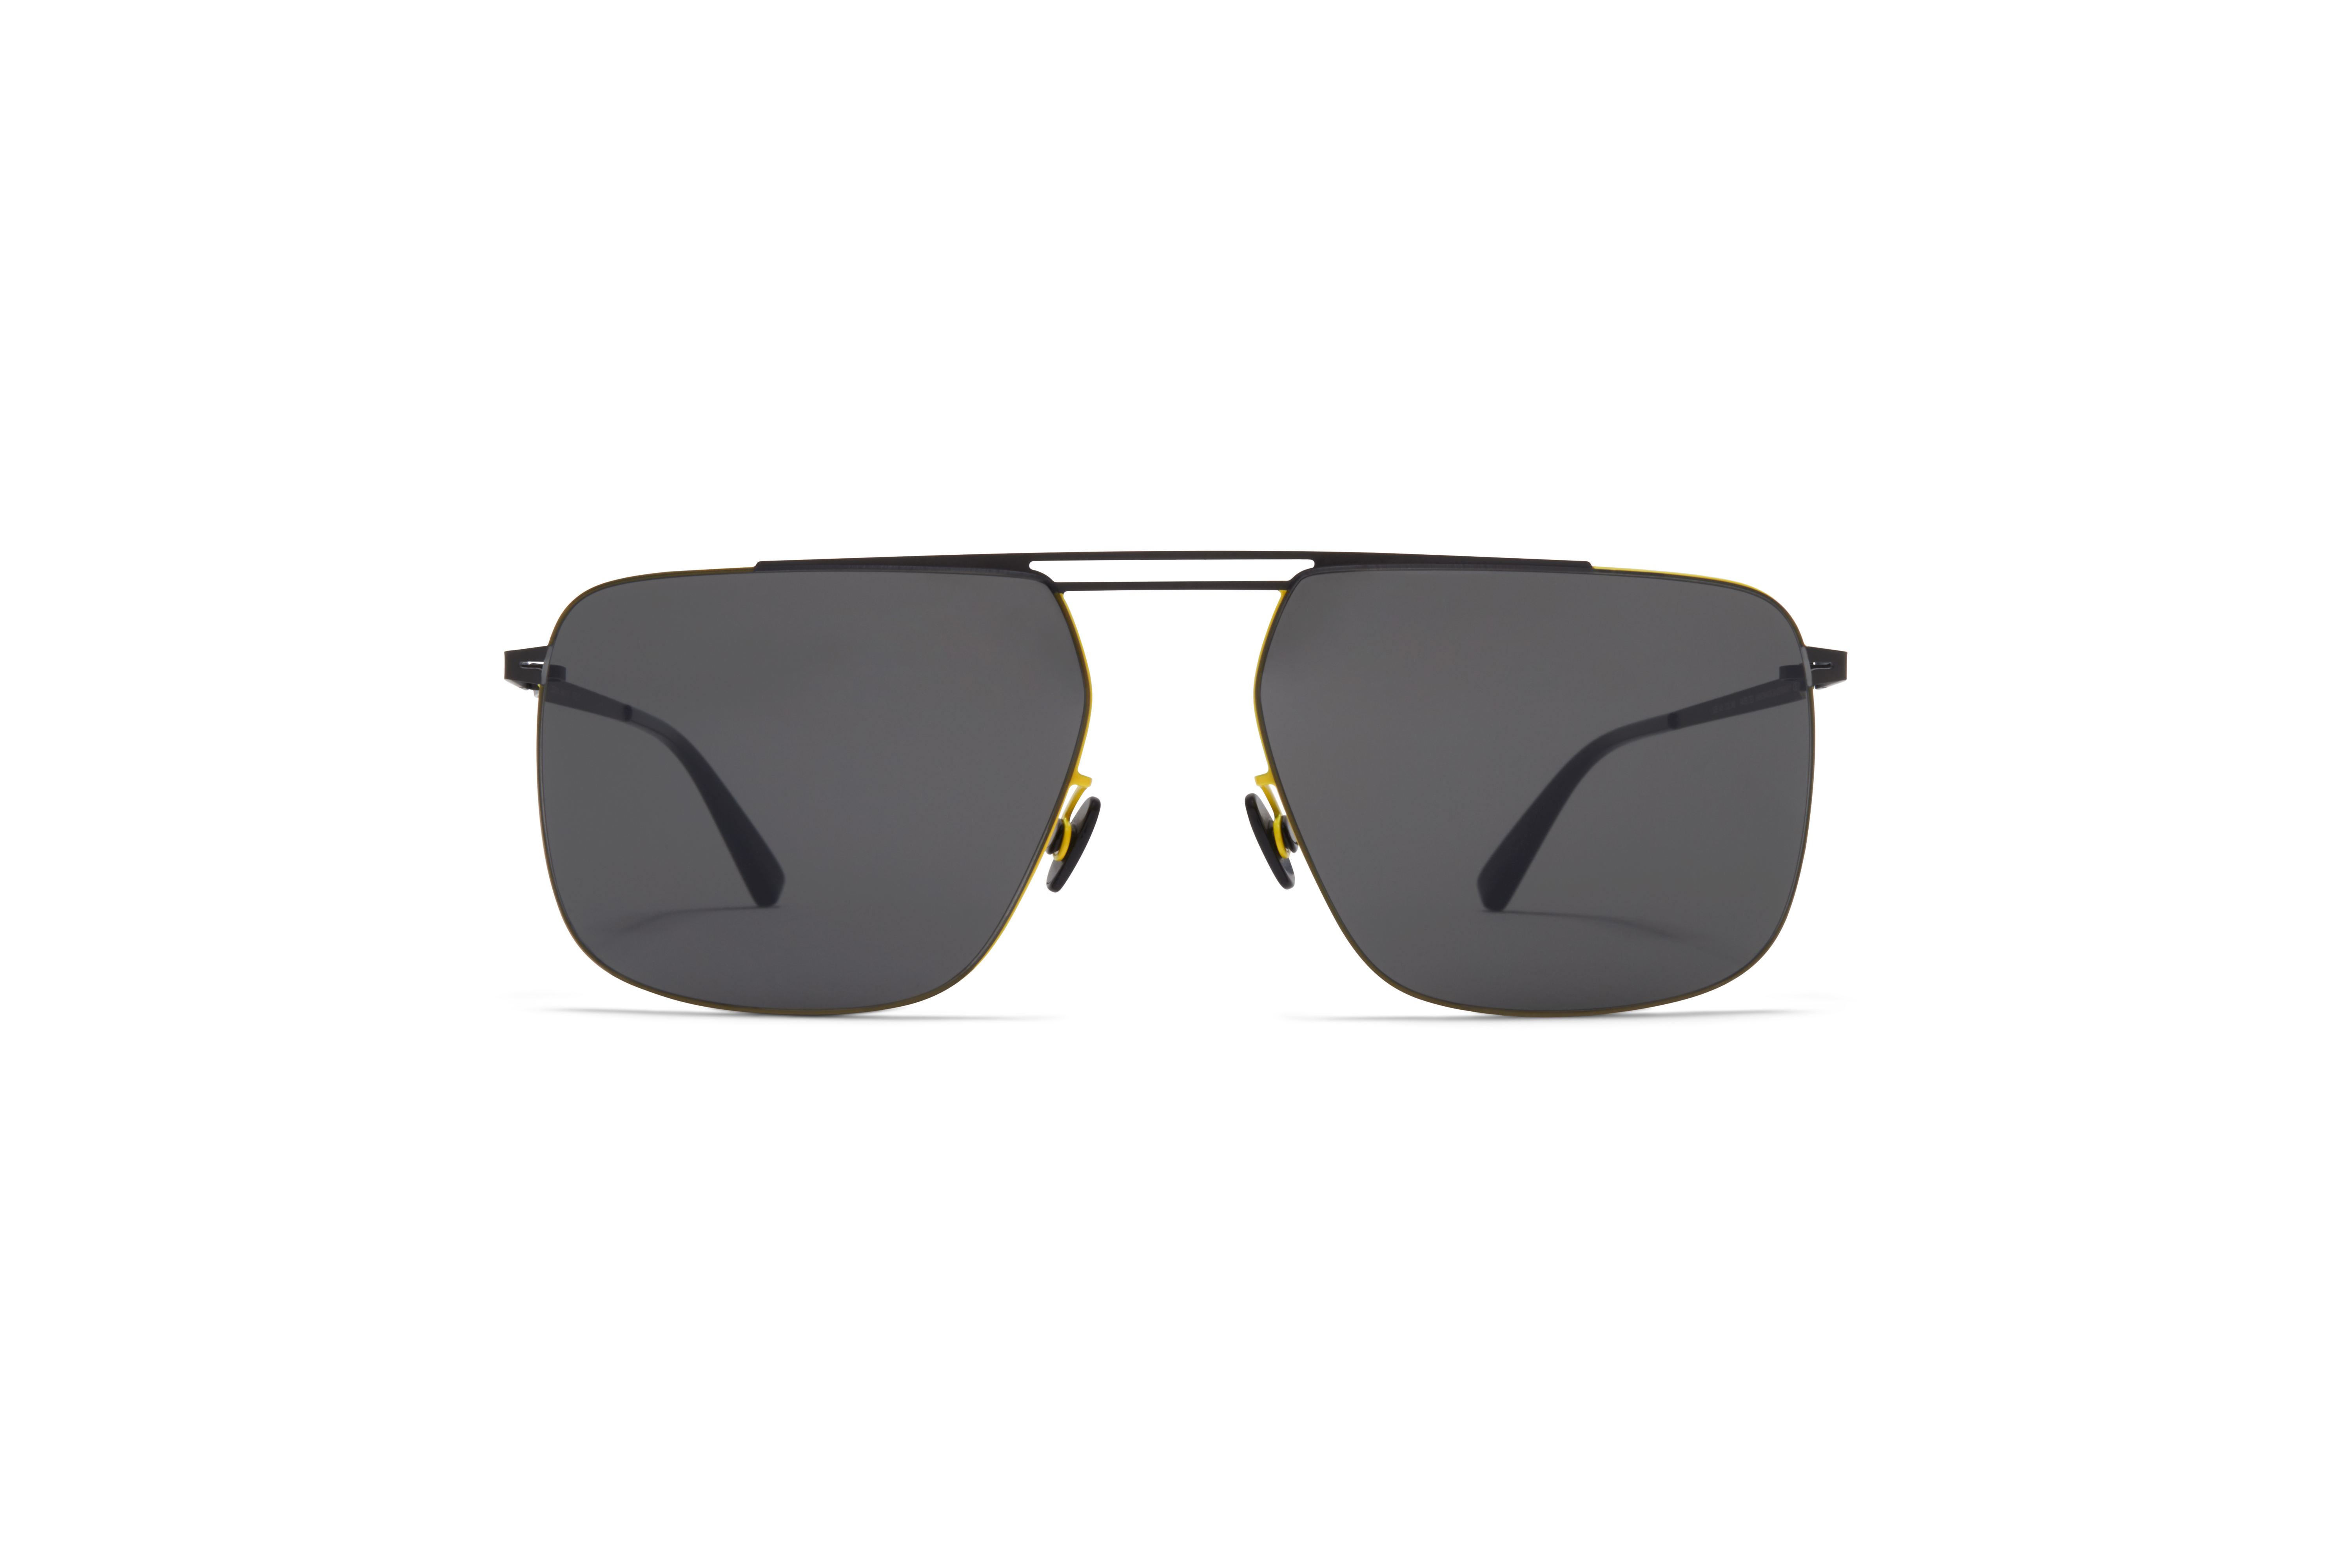 MYKITA Less Rim Sun Raidon Black Neon Yellow Dark Grey Solid